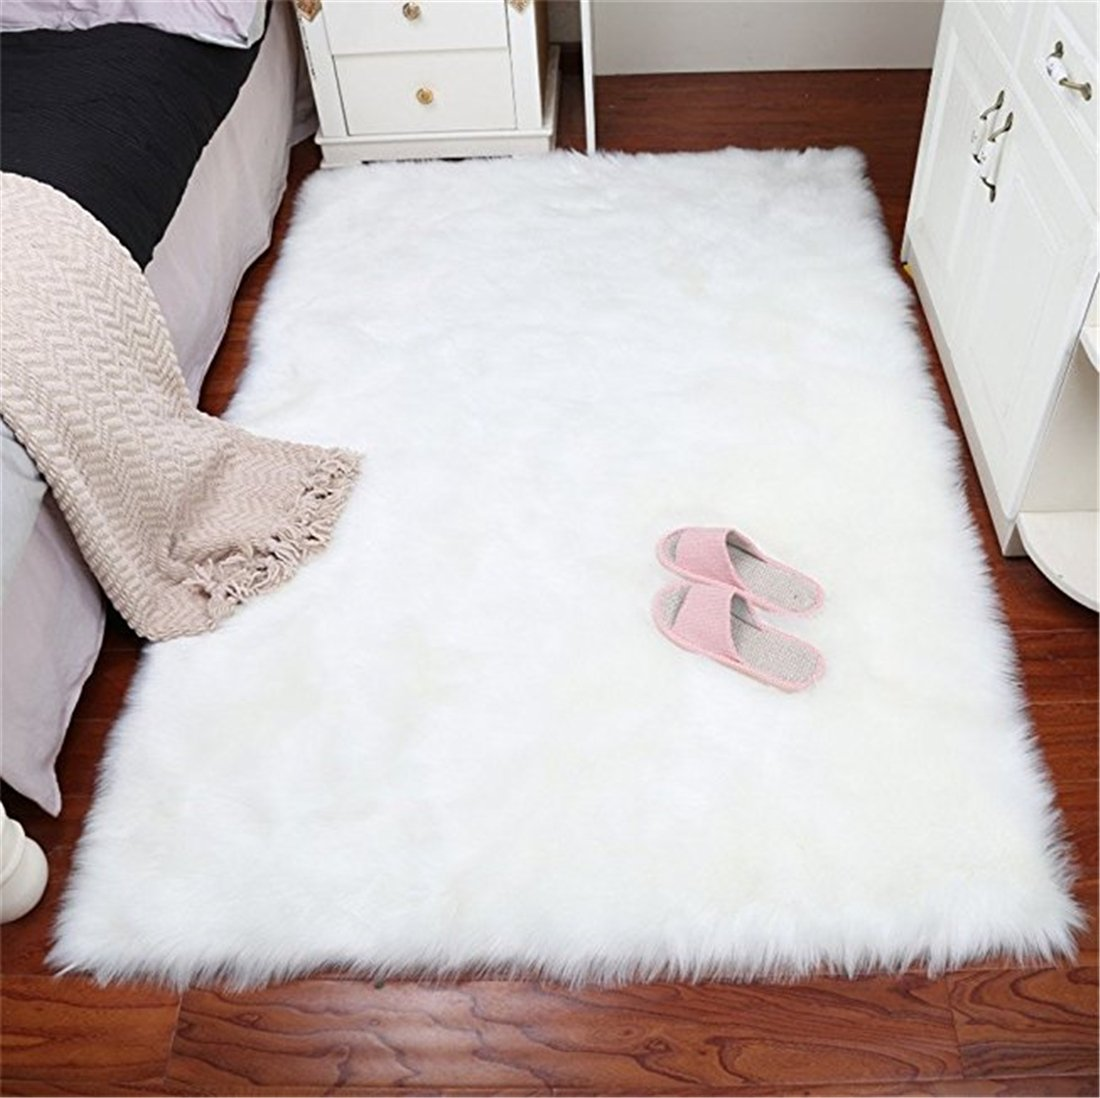 FurFurug Faux Silky Deluxe Sheepskin Area Shag Rug Children Play Carpet